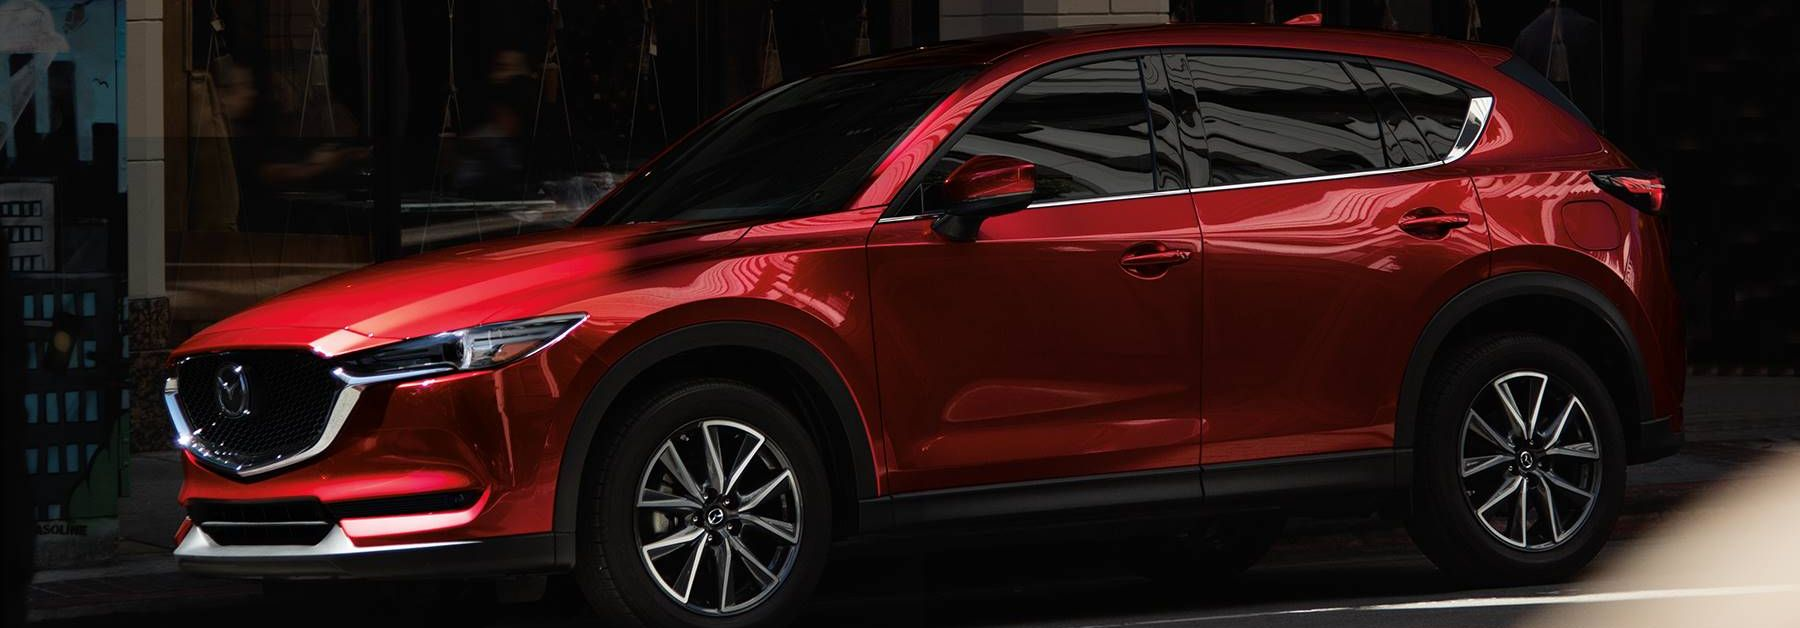 2018 Mazda Cx 5 Leasing Near Garden City Ny Wantagh Mazda